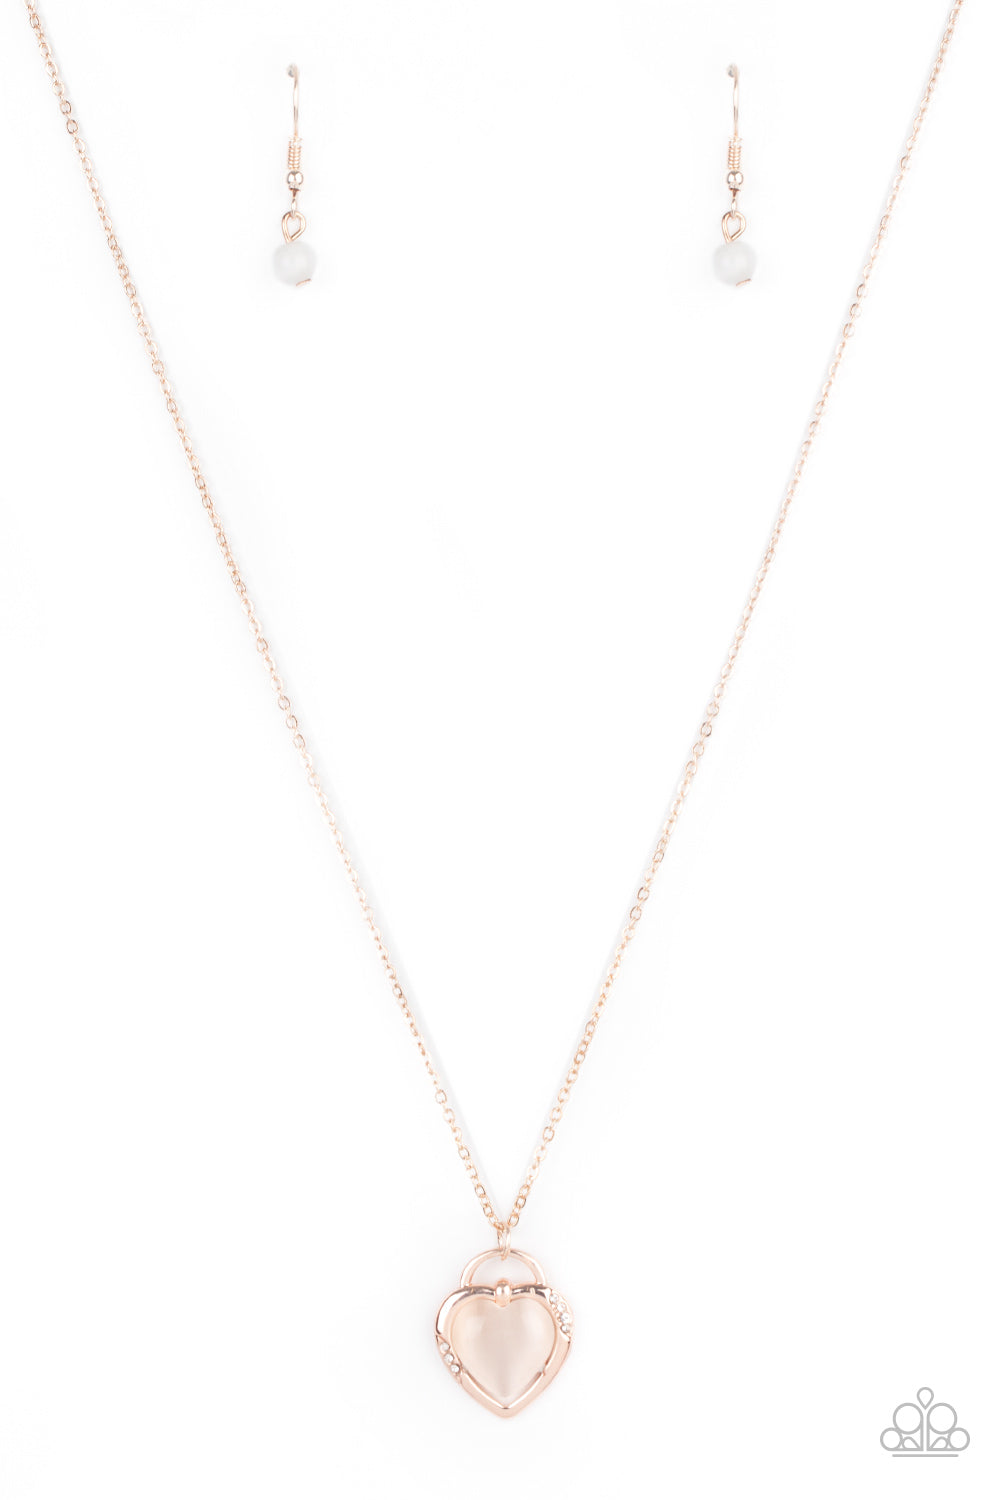 Paparazzi Necklace PREORDER ~ A Dream is a Wish Your Heart Makes - Rose Gold